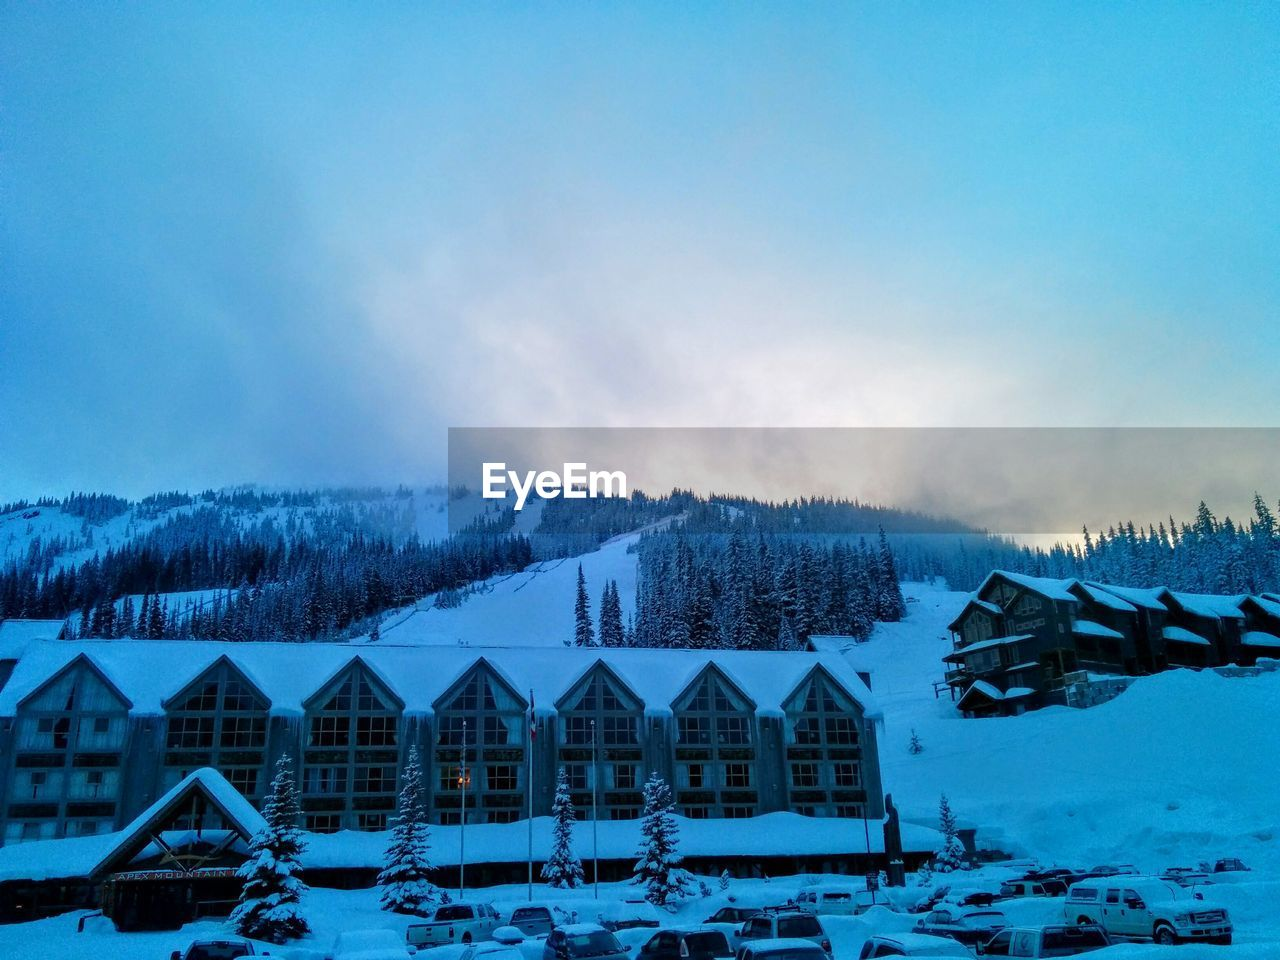 snow, winter, cold temperature, house, scenics, weather, nature, beauty in nature, tranquility, tranquil scene, outdoors, sky, frozen, mountain, building exterior, built structure, no people, landscape, day, tree, architecture